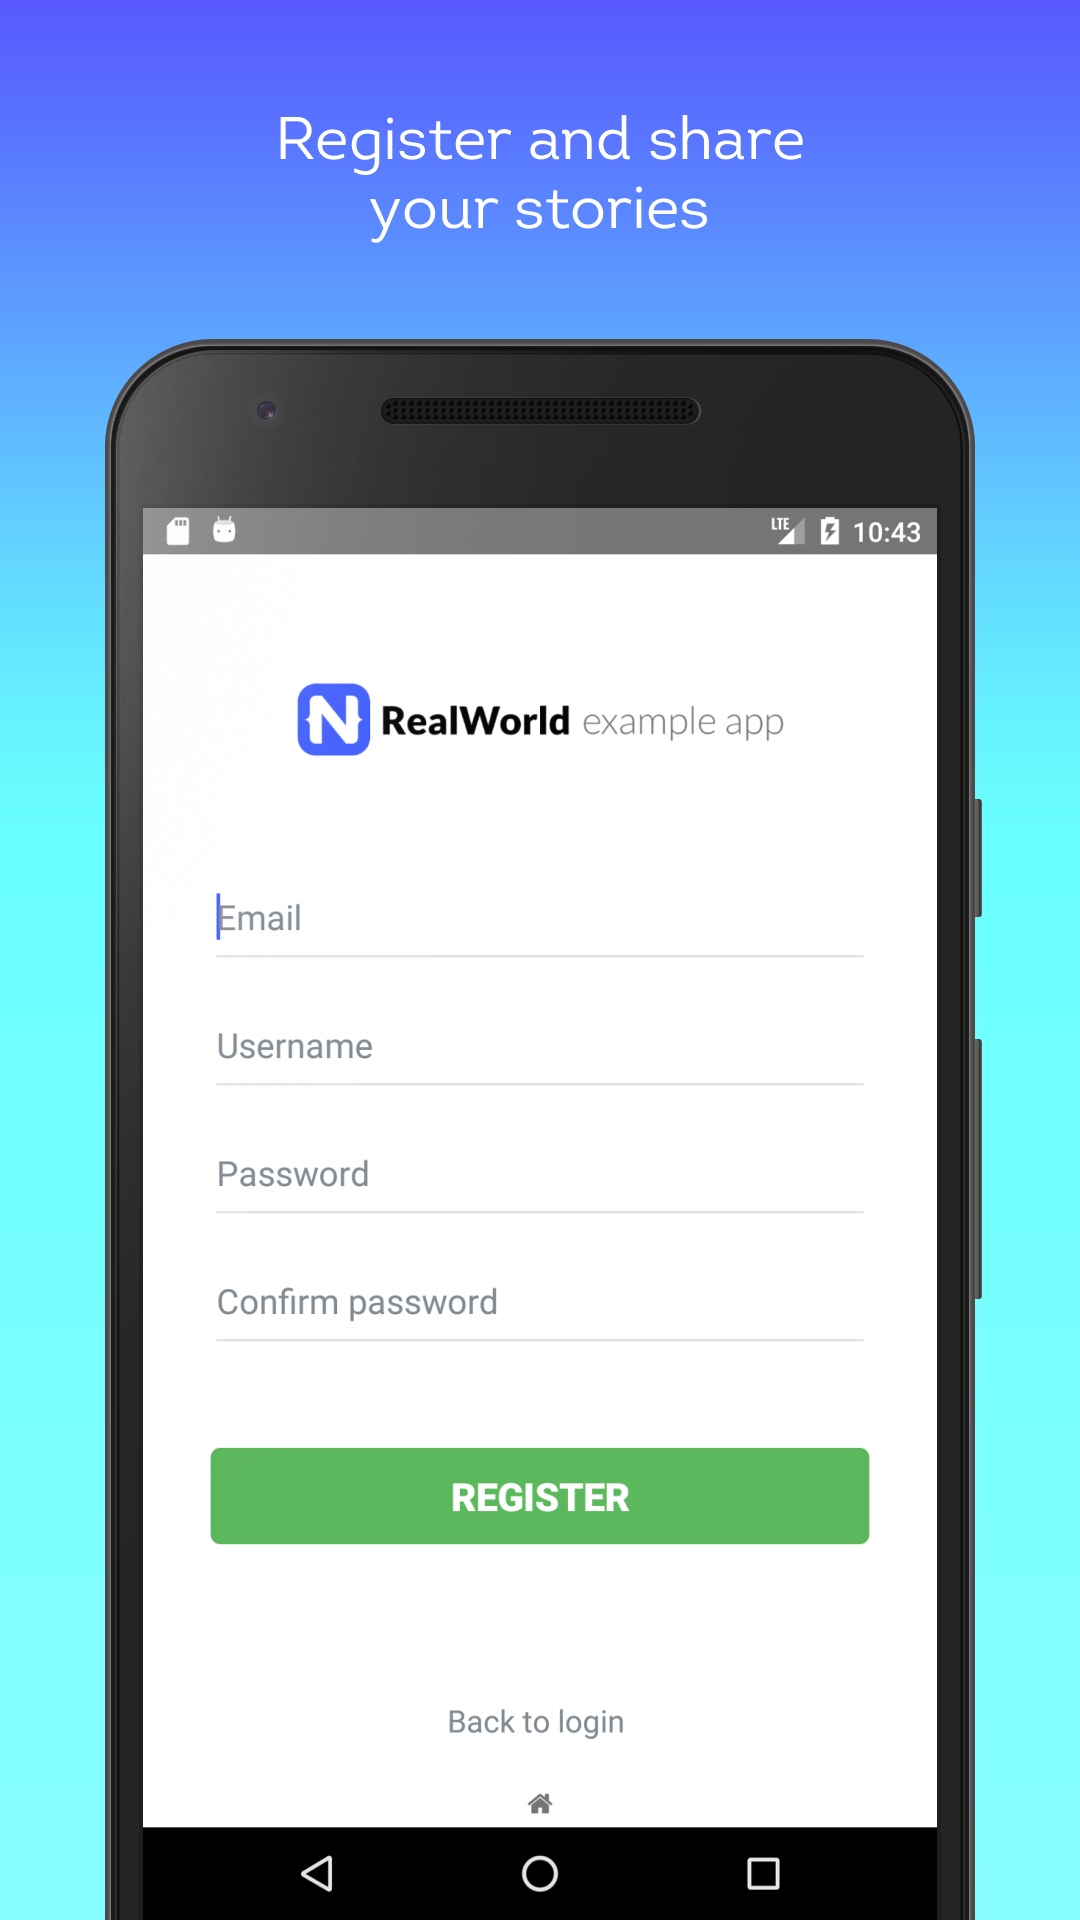 NativeScript RealWorld Example App